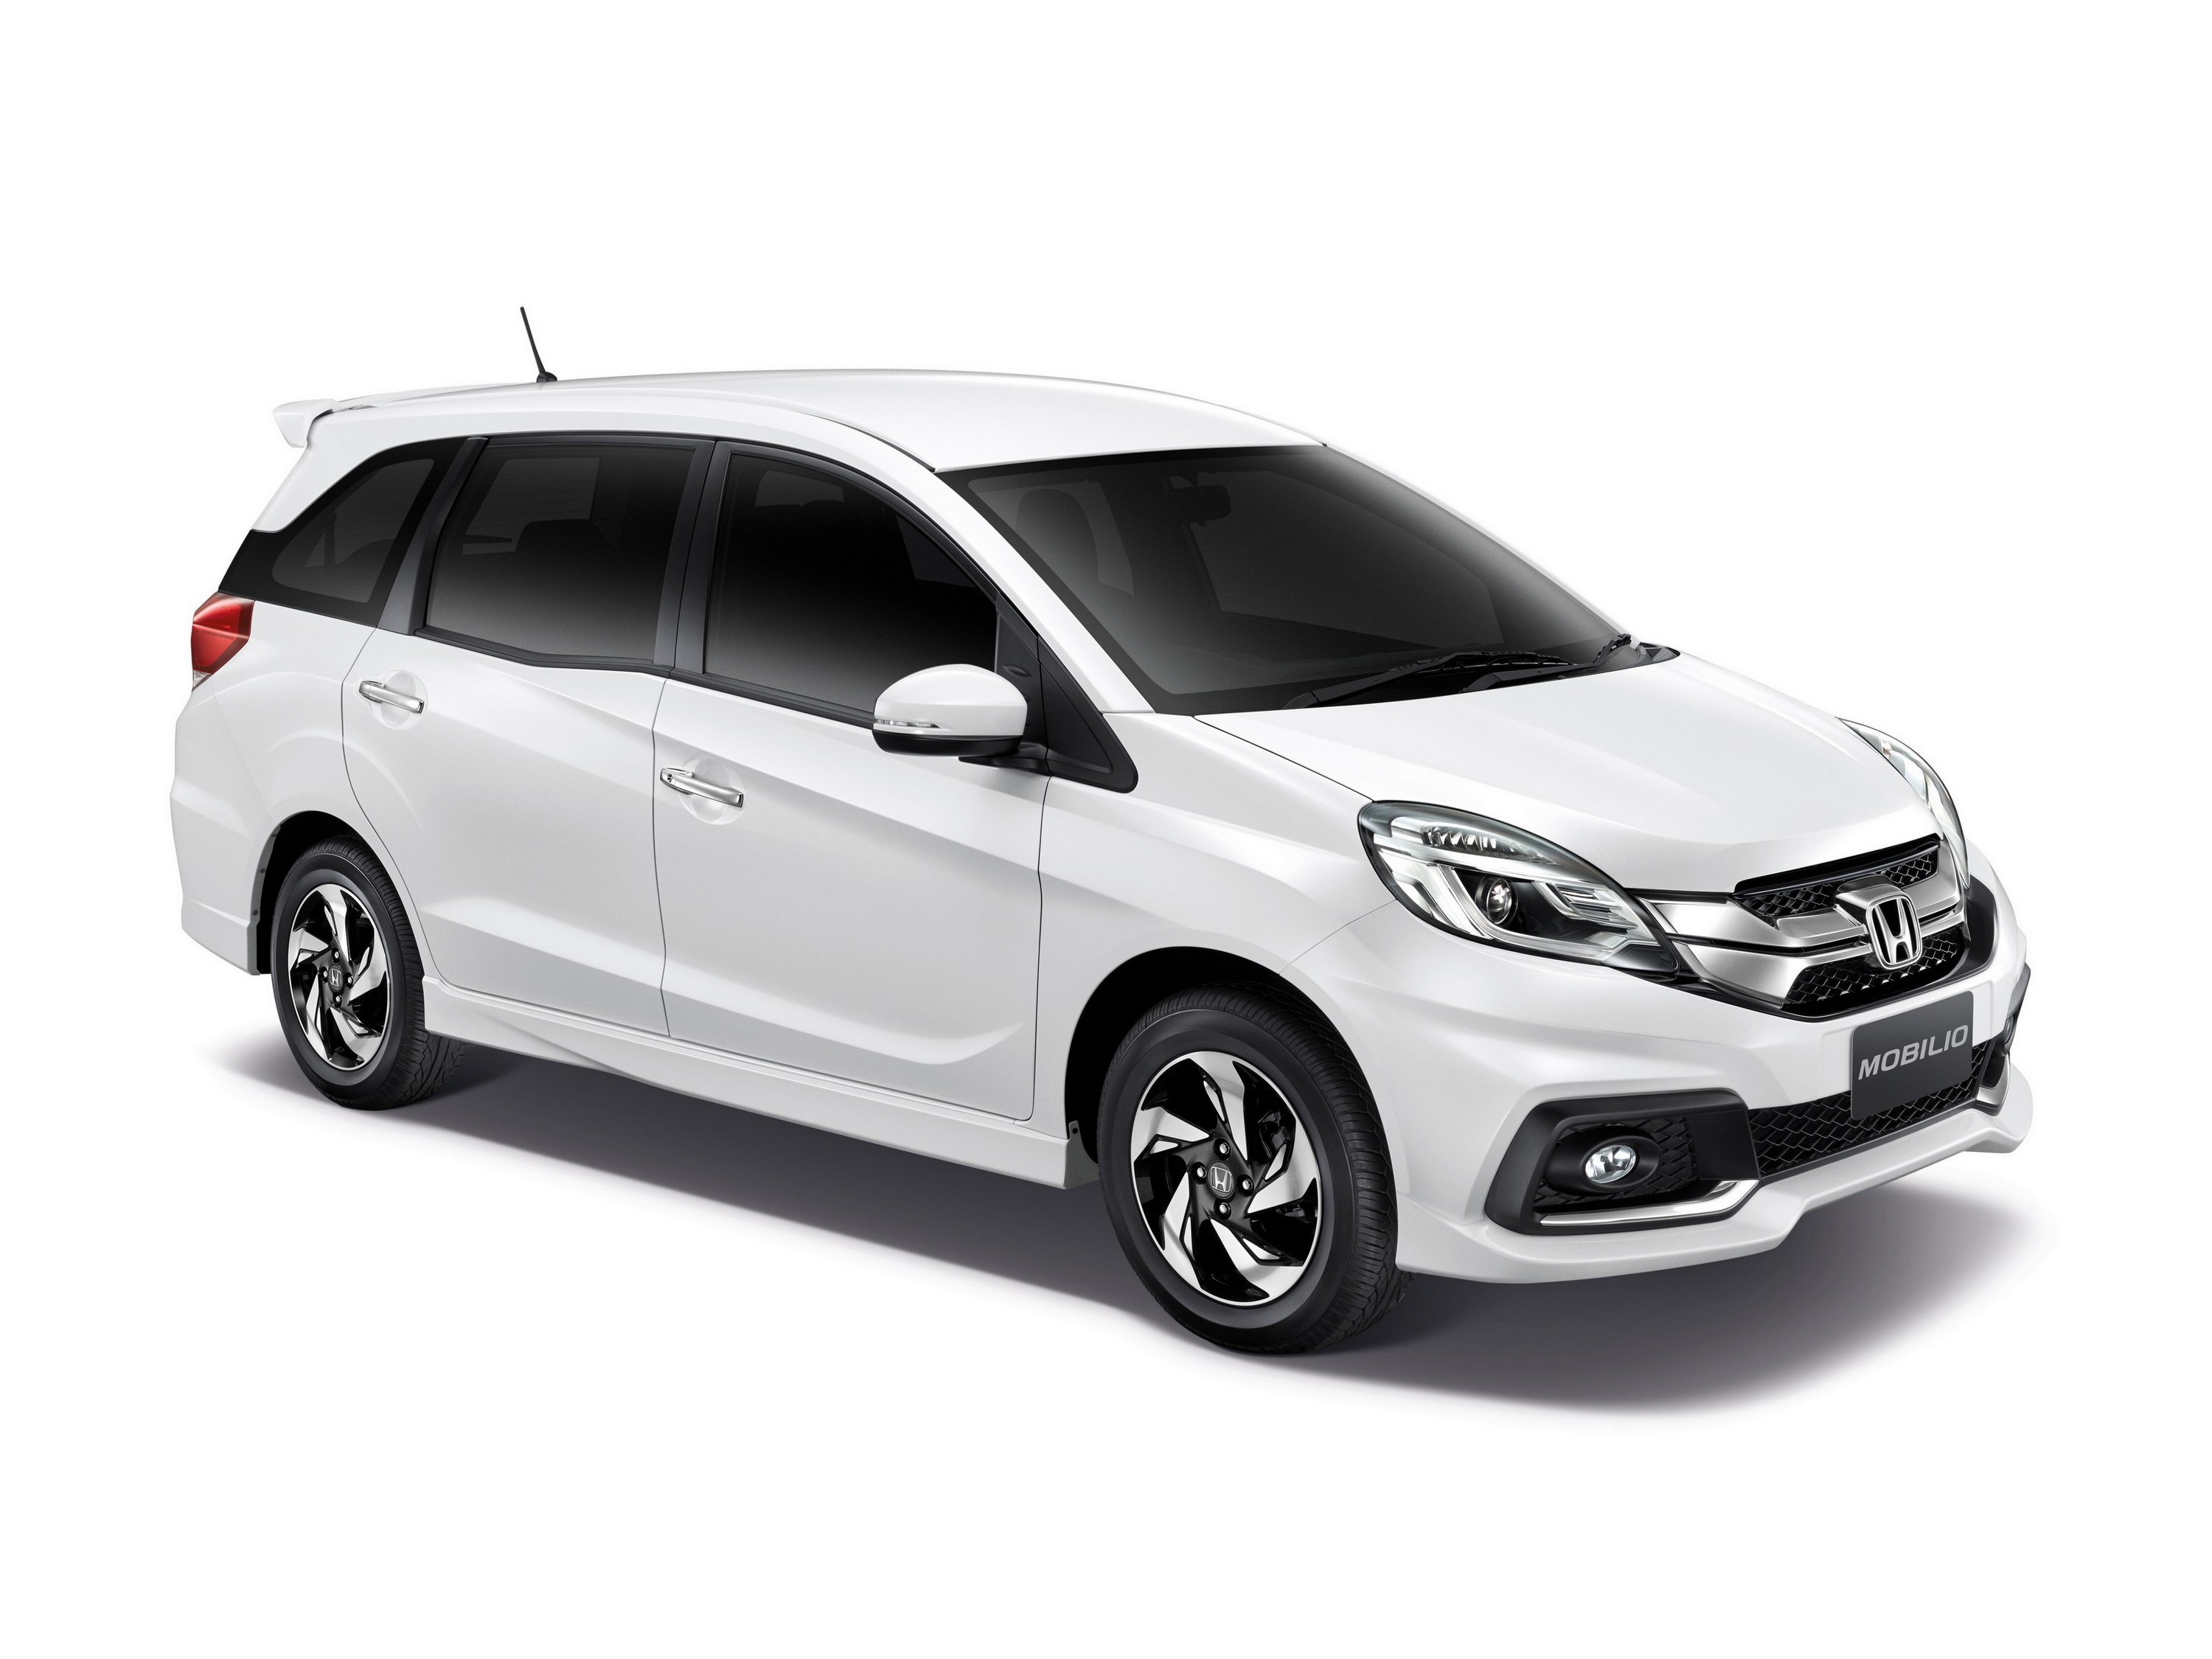 honda mobilio discontinued from indian market replacement in the